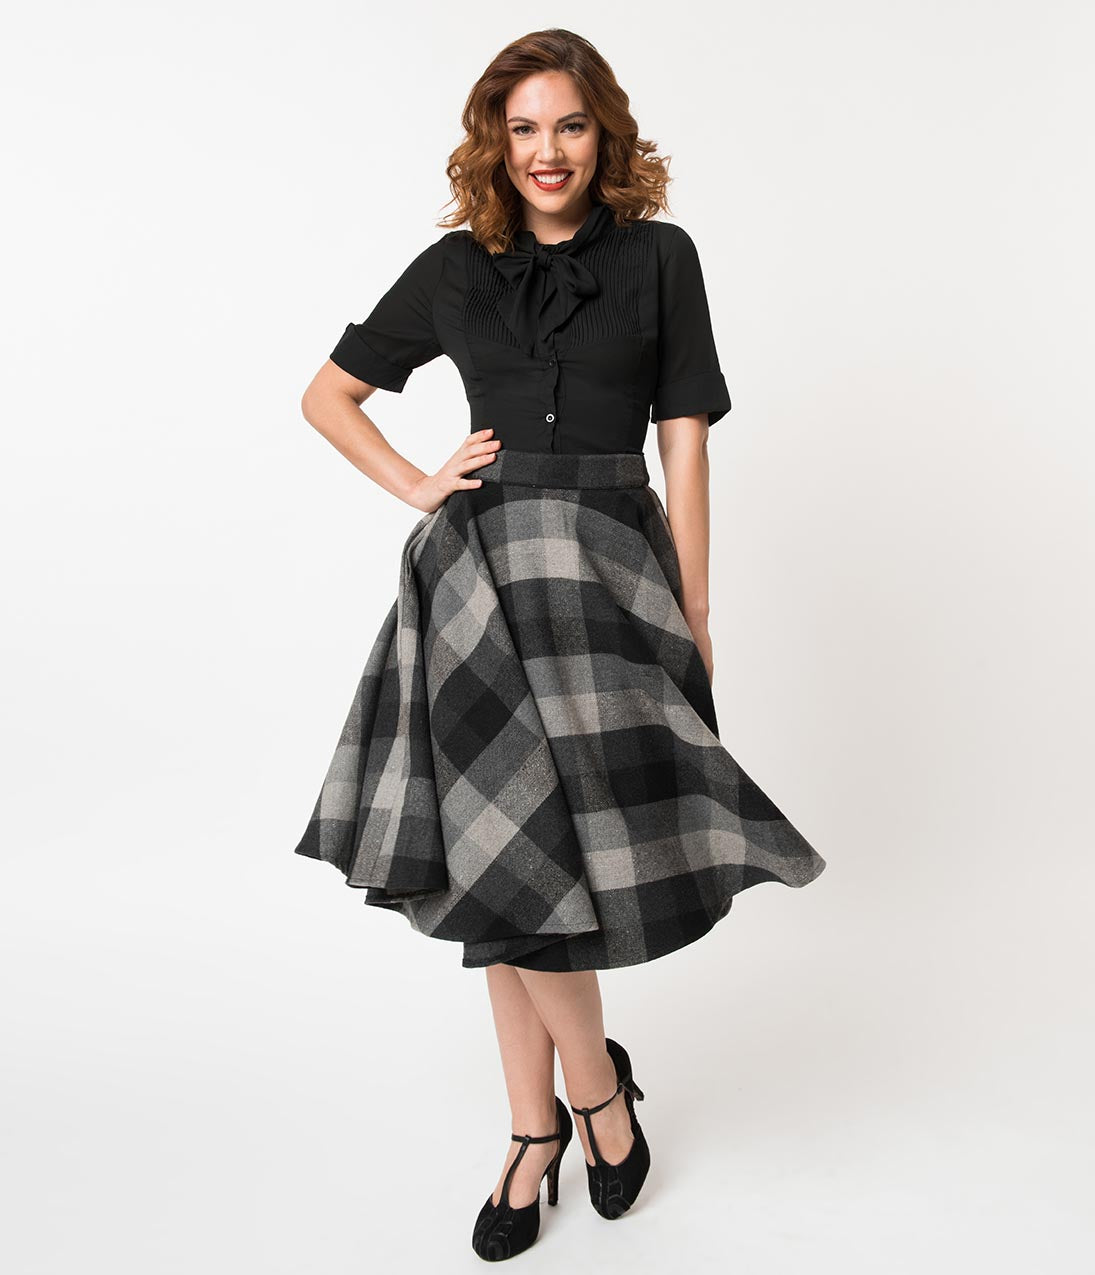 50s Skirt Styles | Poodle Skirts, Circle Skirts, Pencil Skirts Retro Style Grey  Black Wool Checkered High Waist Sophie Swing Skirt $72.00 AT vintagedancer.com